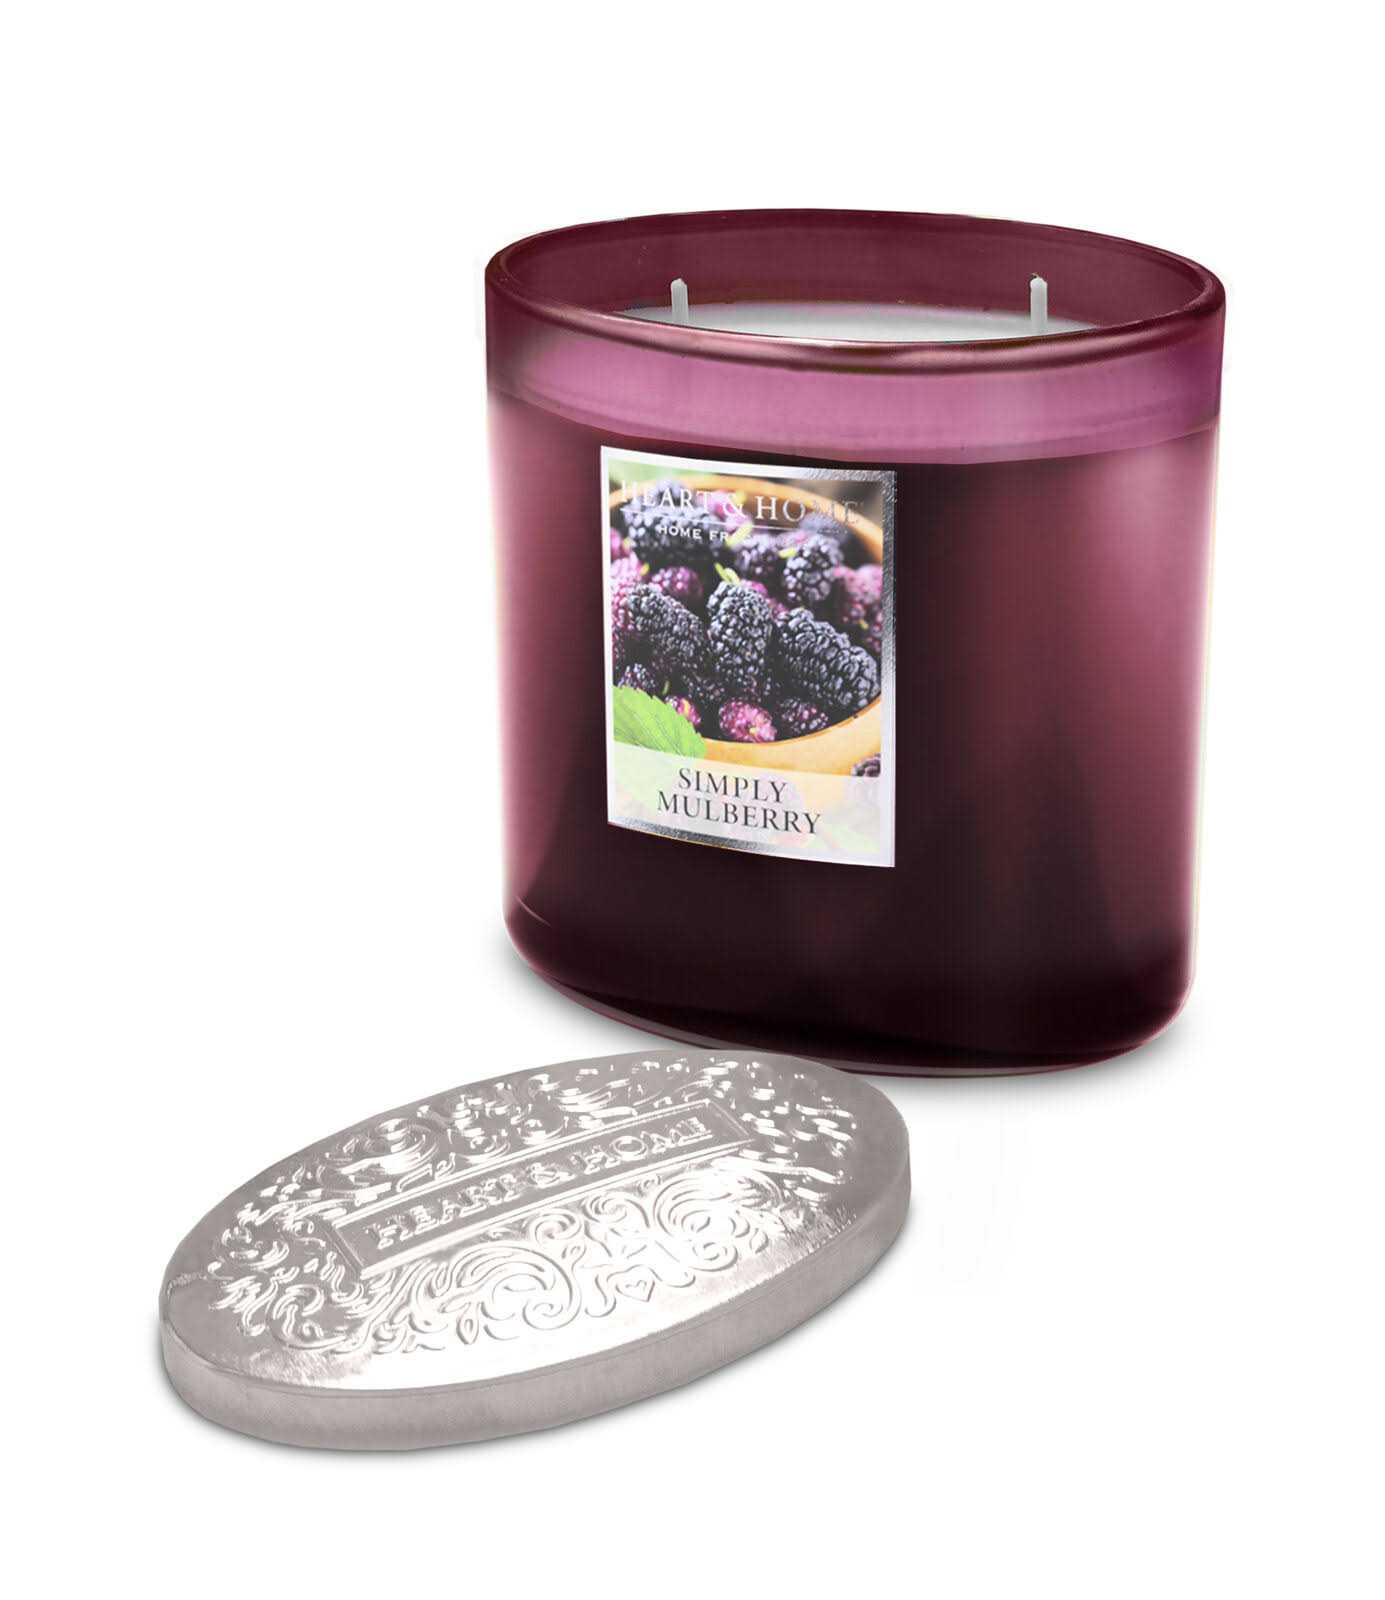 Heart & Home 2 Wick Ellipse Candle - Simply Mulberry